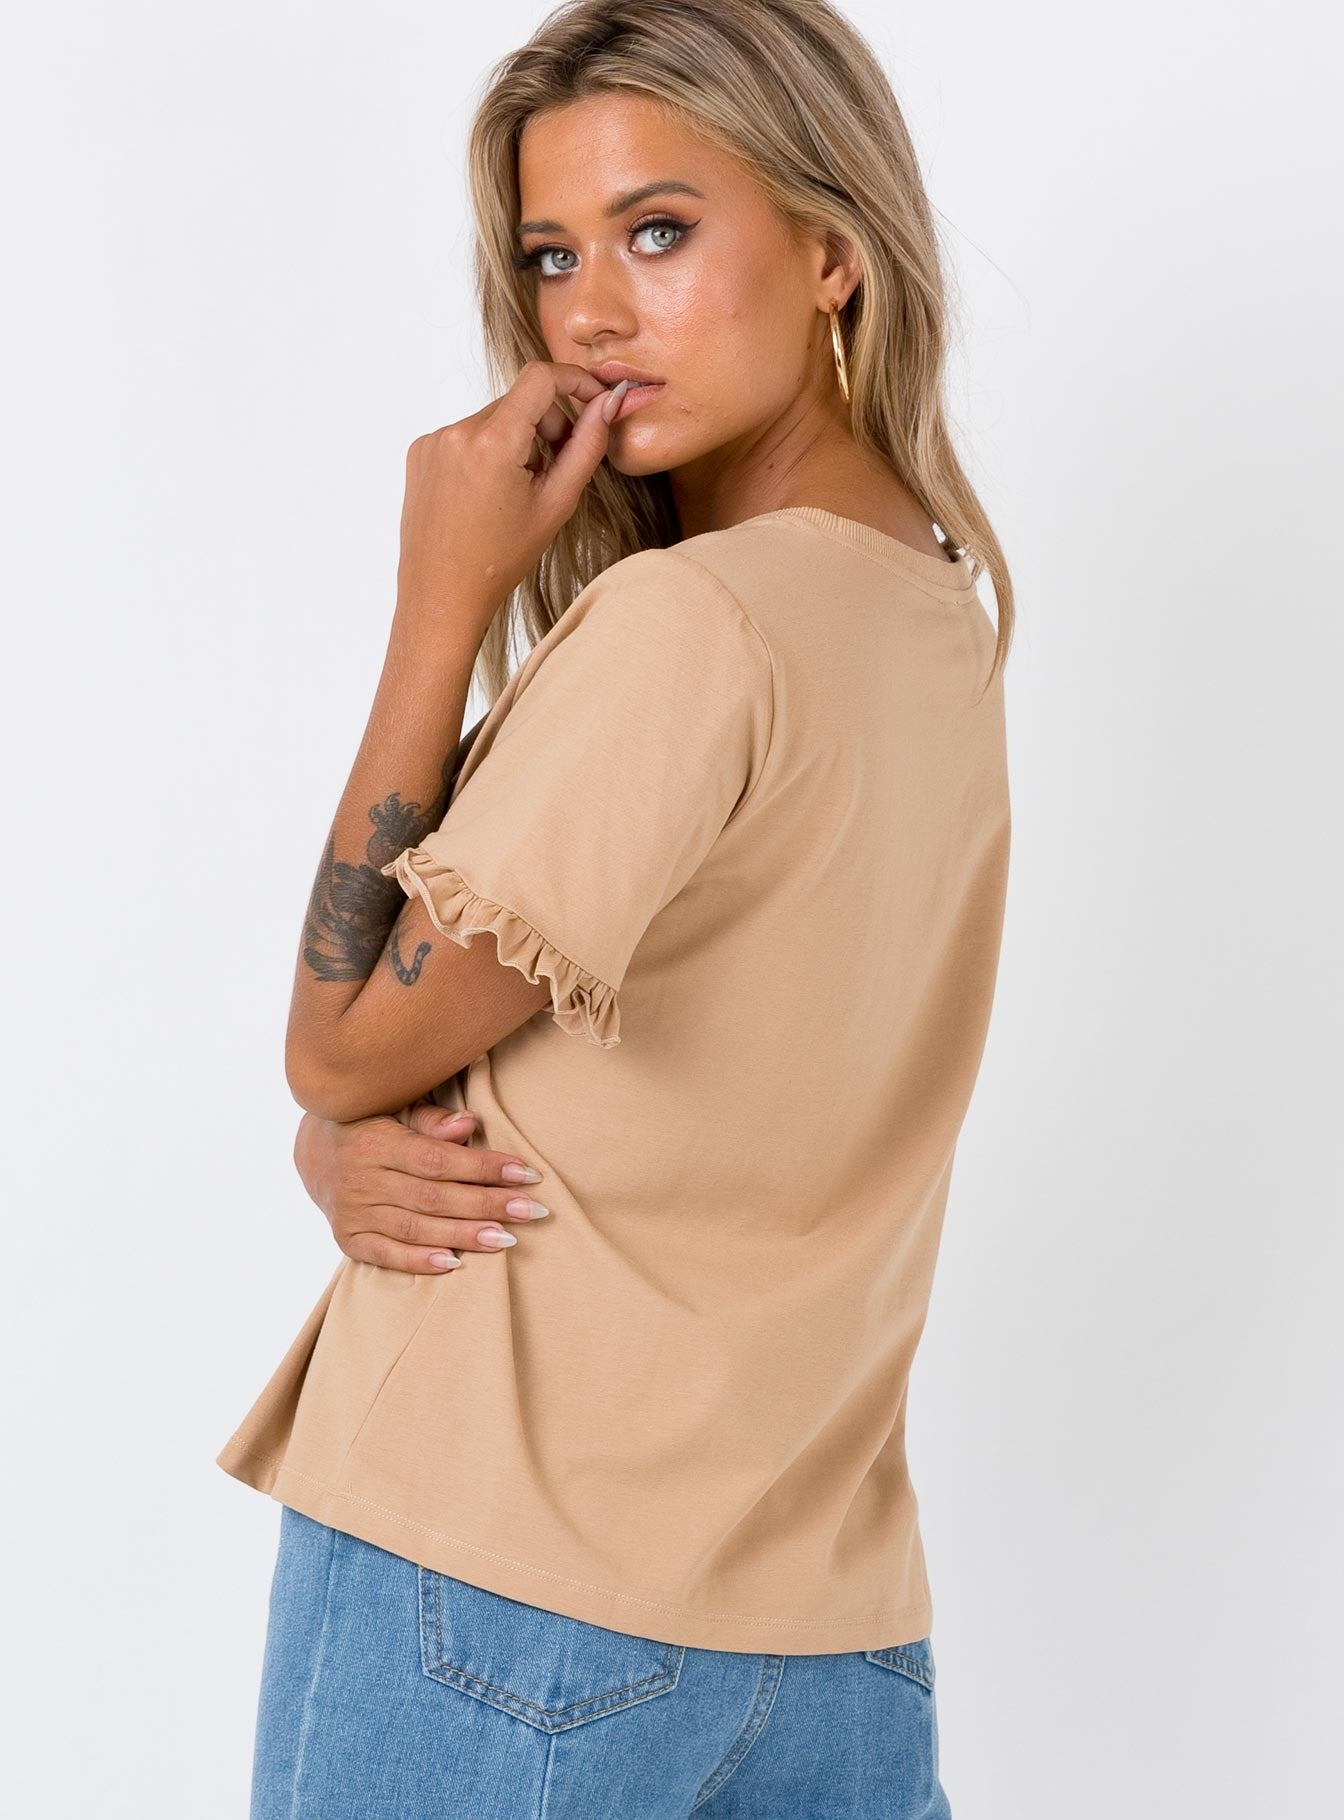 Roxy Ruffle Top Beige